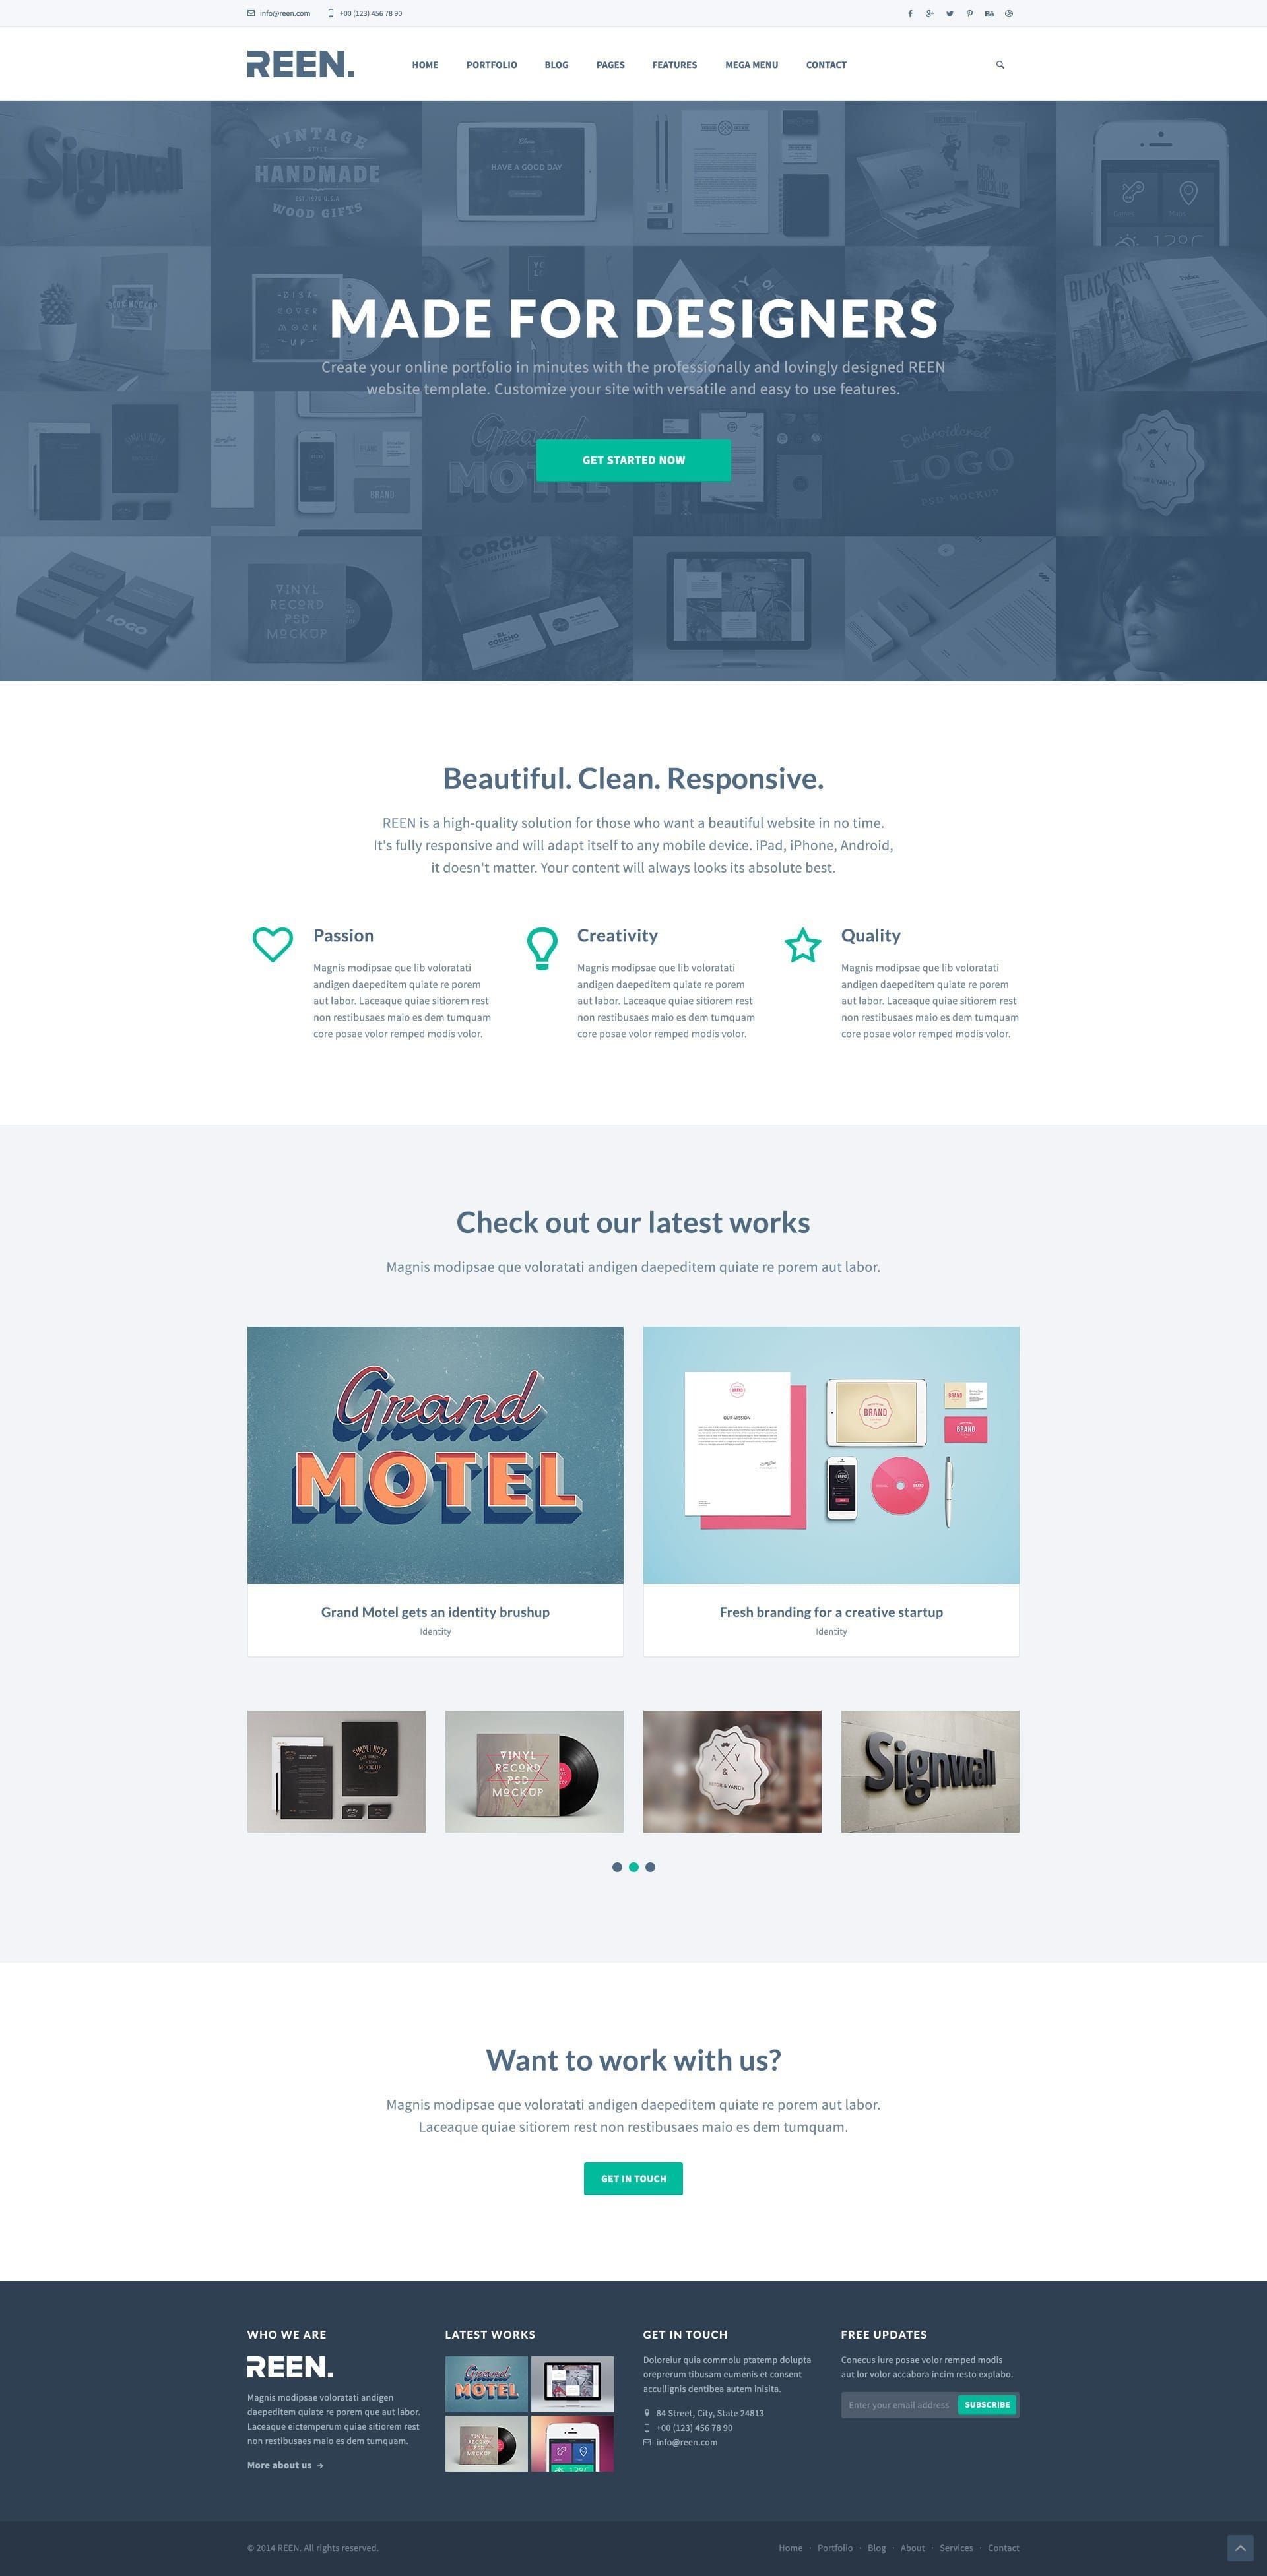 000 Sensational Website Template Free Download High Definition  Online Shopping Colorlib New Wordpres Html5 For BusinesFull